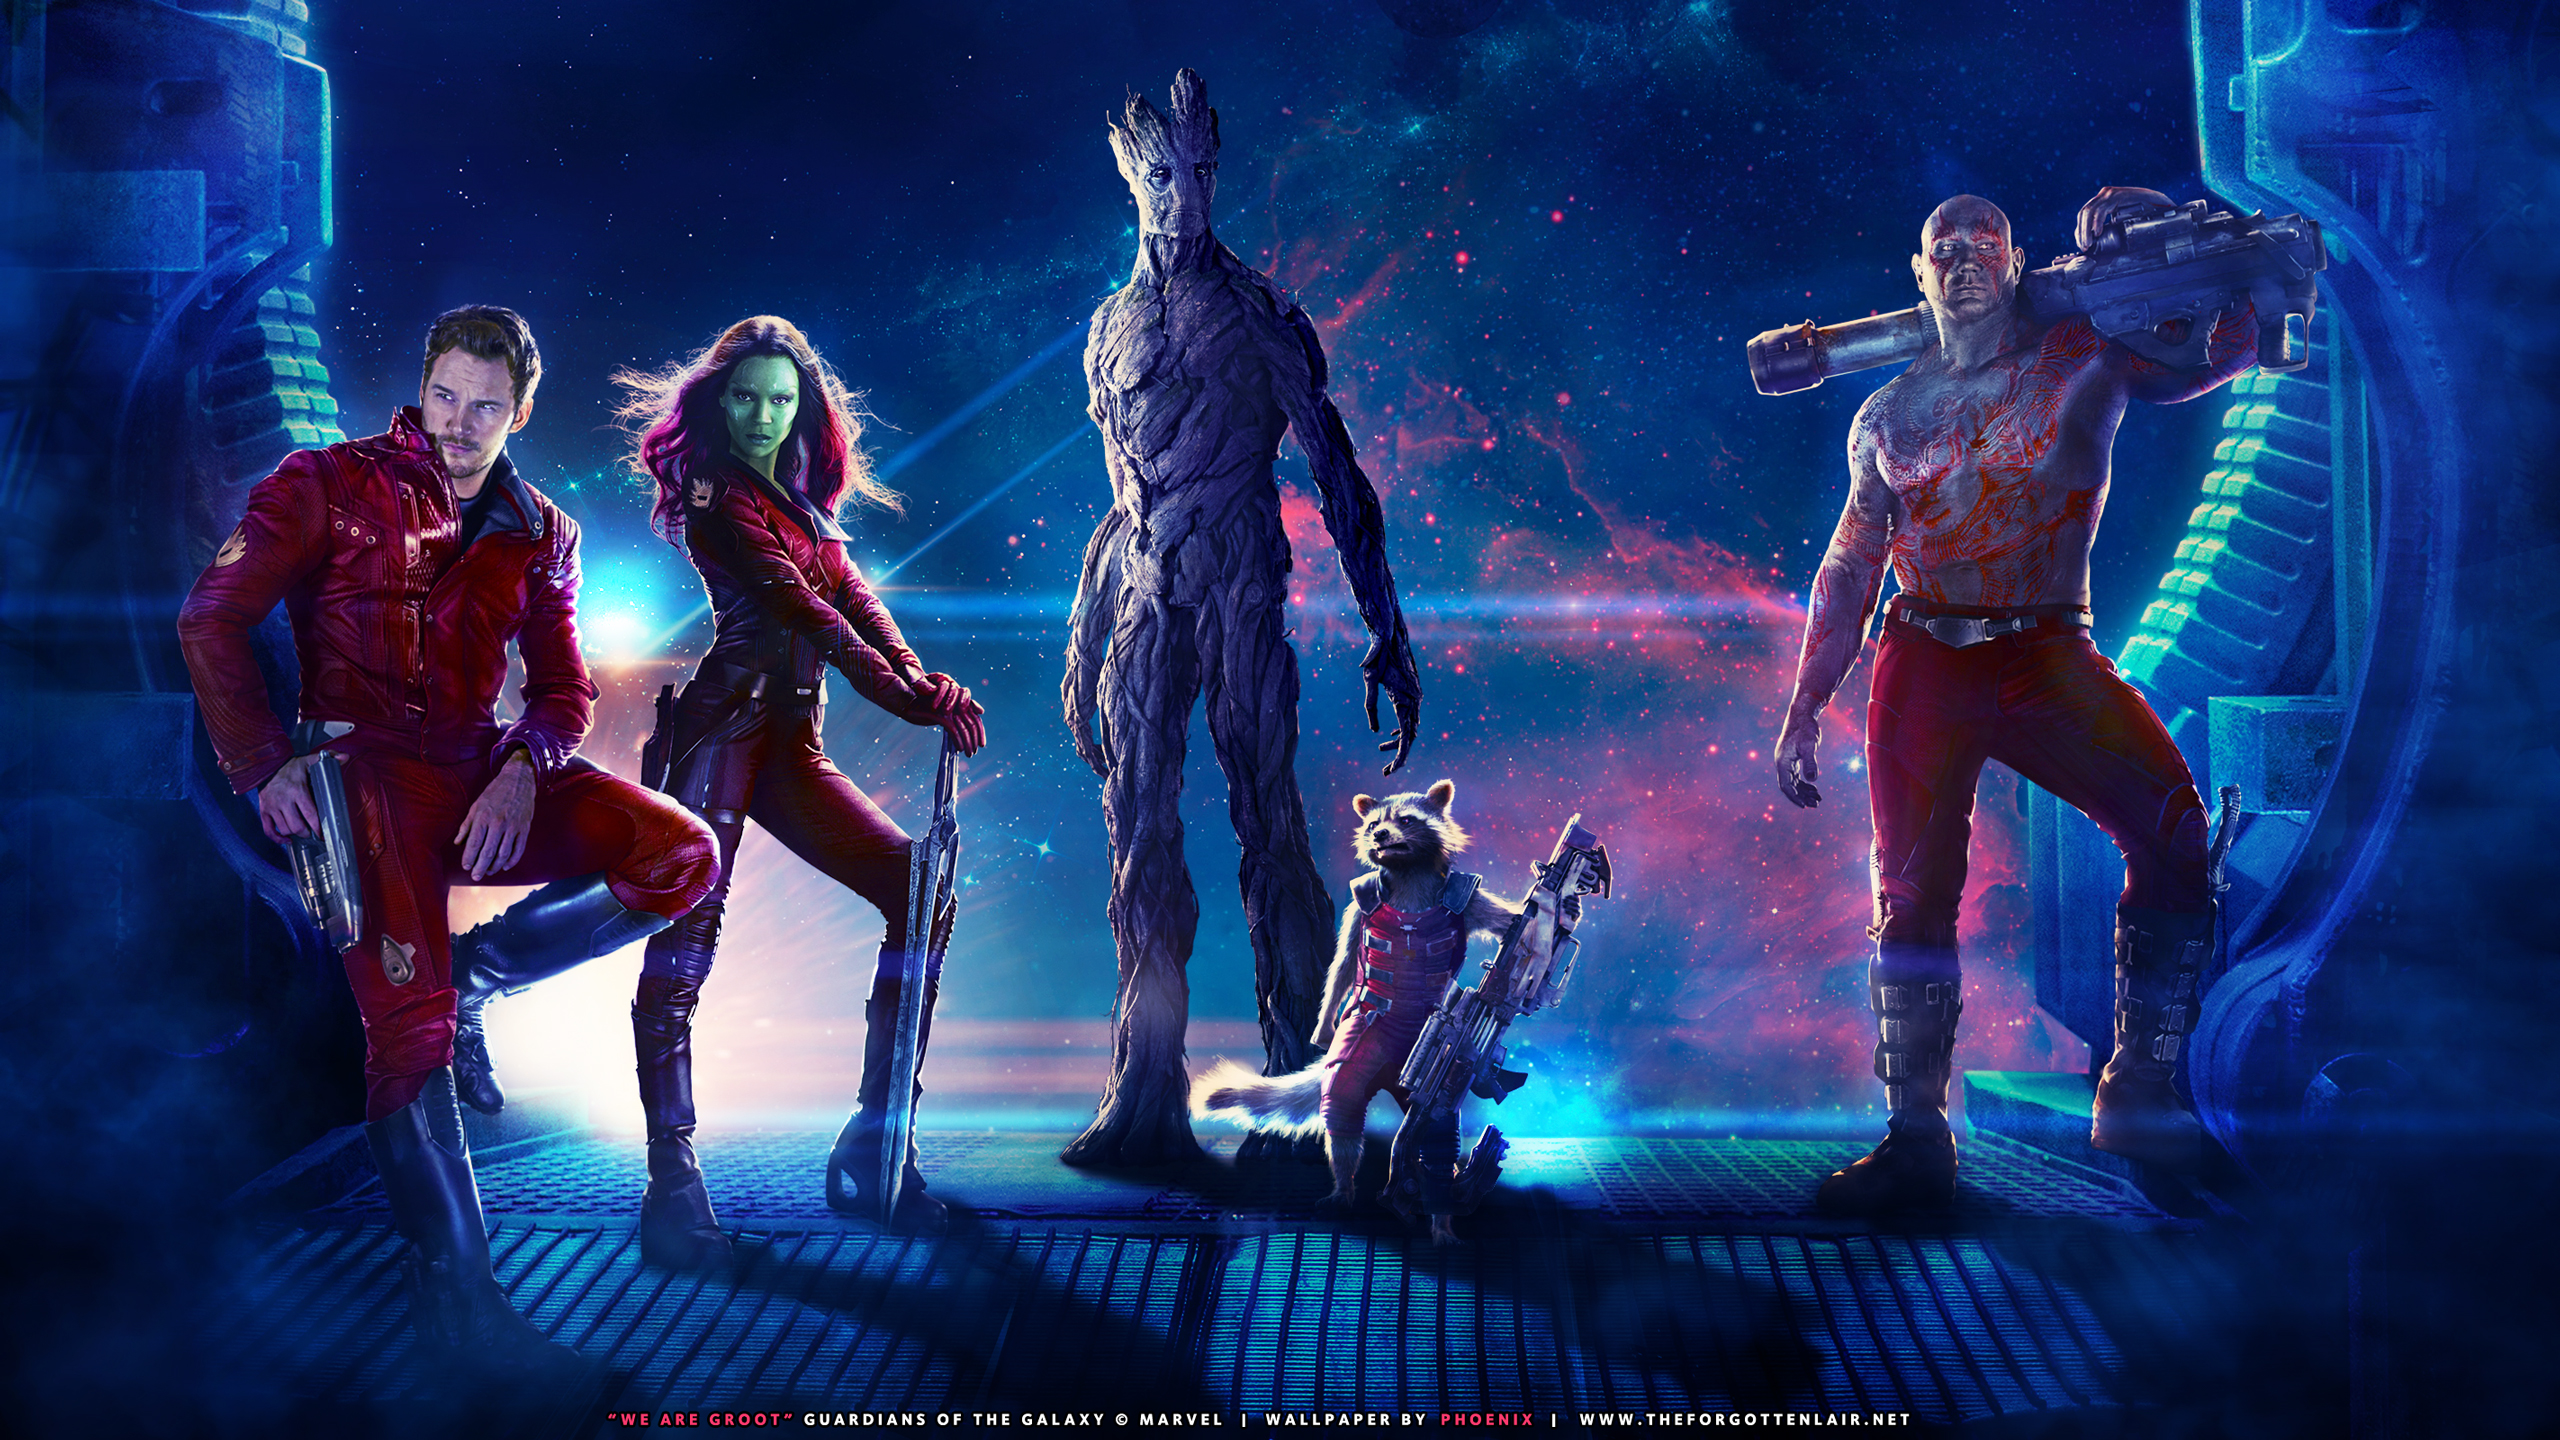 We Are Groot 1080p Guardians Of The Galaxy 227912 Hd